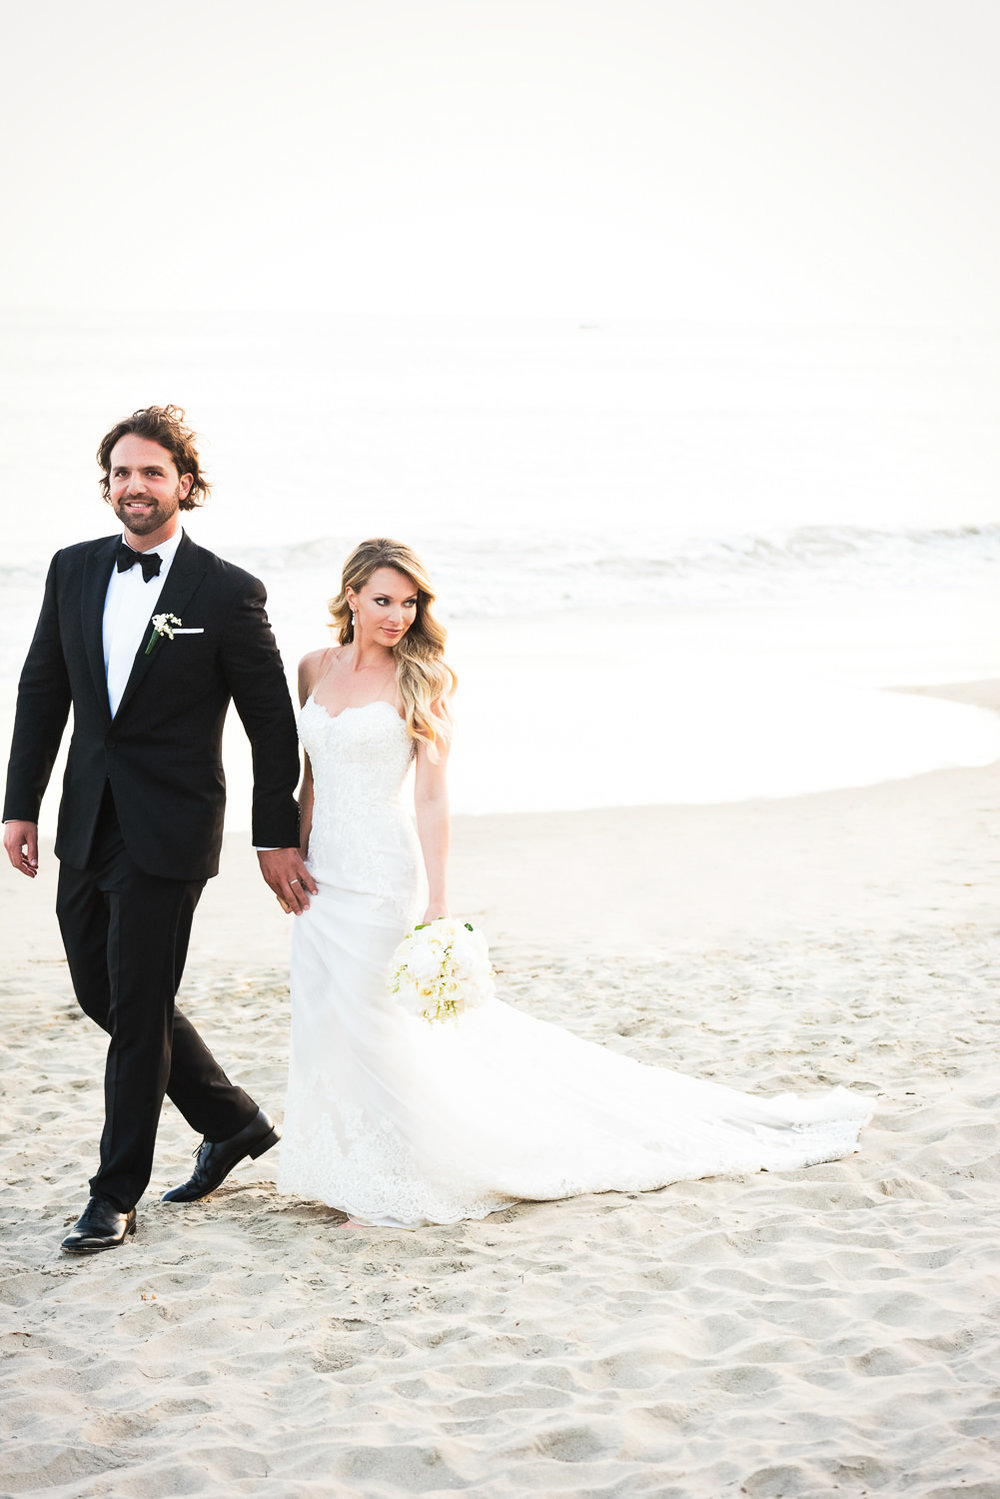 Four Seasons Santa Barbara Wedding - Walking On The Beach